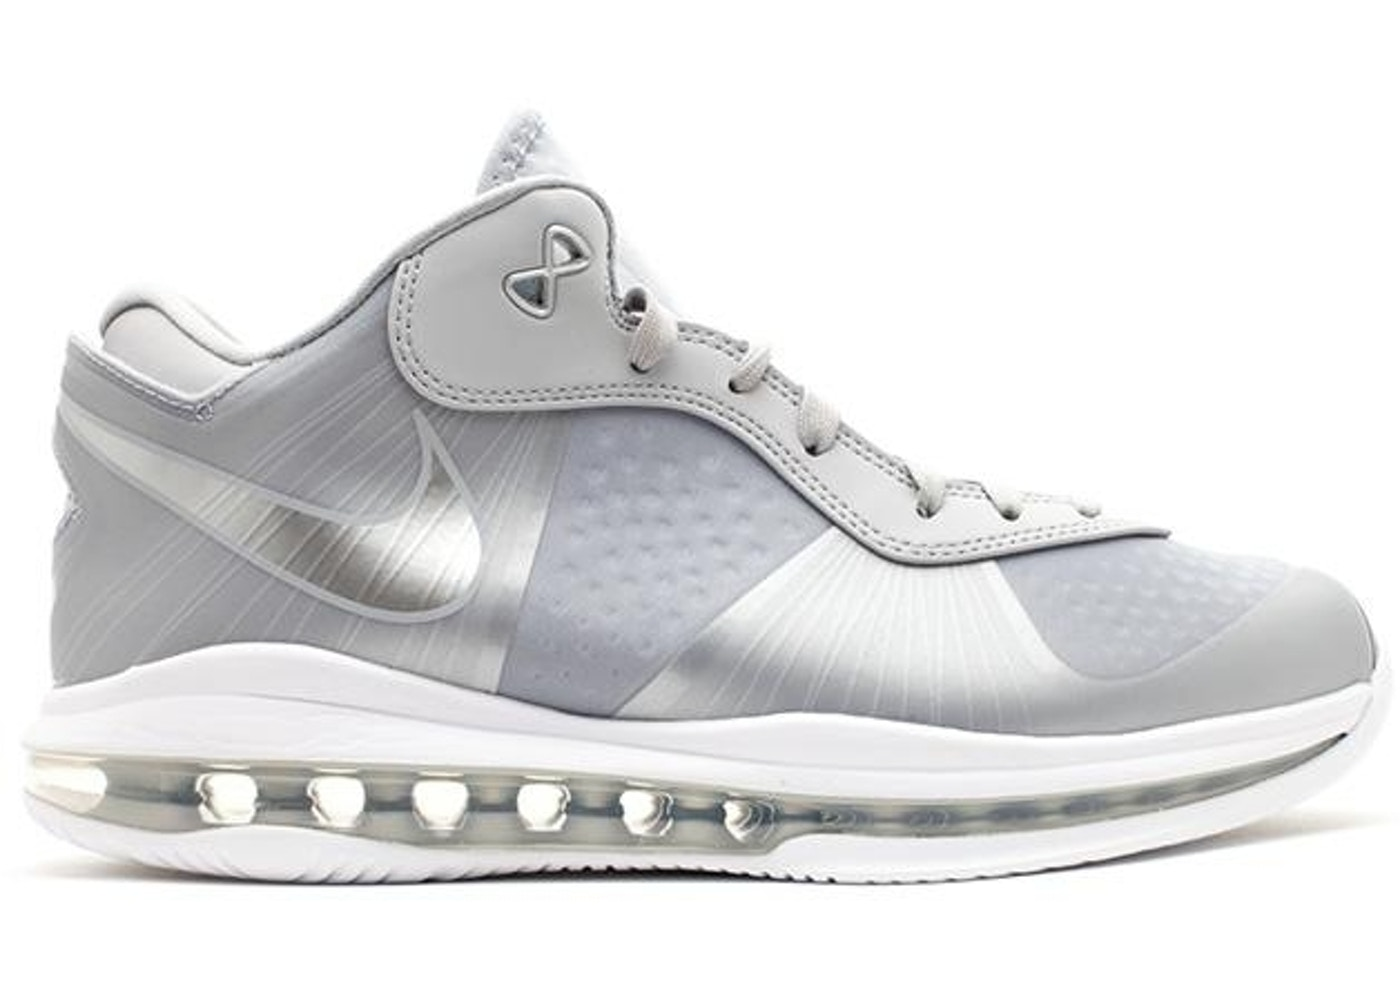 factory price 9a74a 2225d Buy Nike LeBron 8 Shoes   Deadstock Sneakers